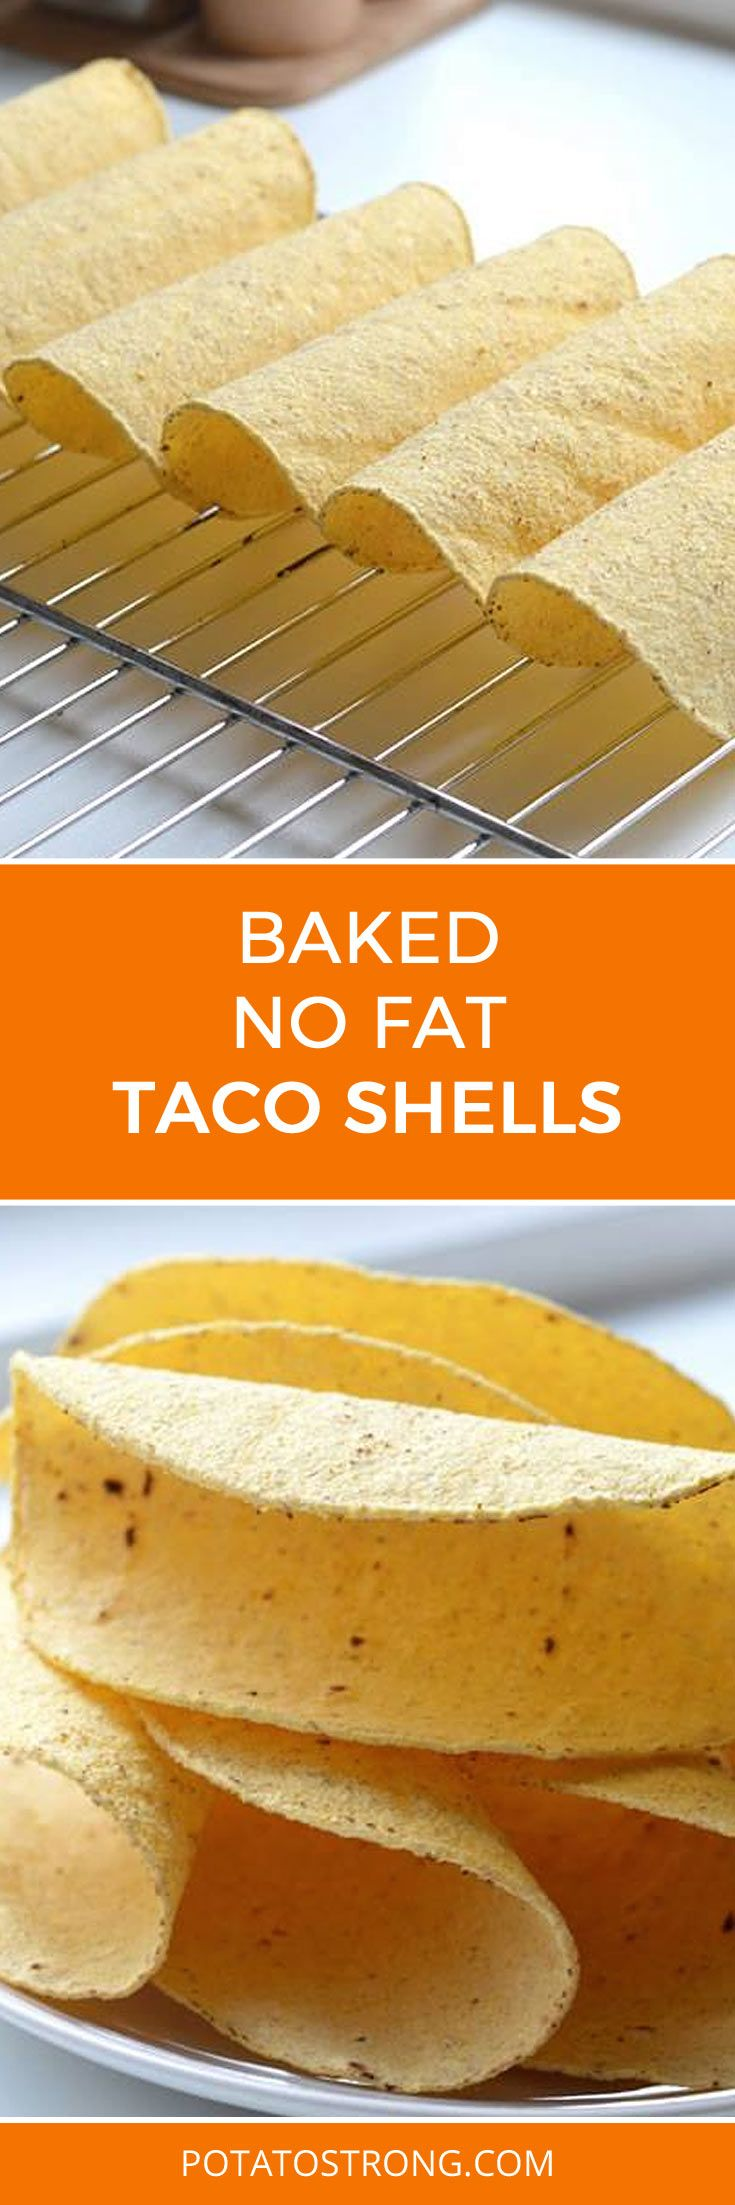 Are you tired of those cardboard-tasting taco shells you buy in the store, not to mention fattening and full of chemicals? Well now you can make your own tasty corn taco shells! I buy yellow corn no fat tortillas from La Tortilleria in Toronto, Ontario. They ship worldwide if you can't find these where you …